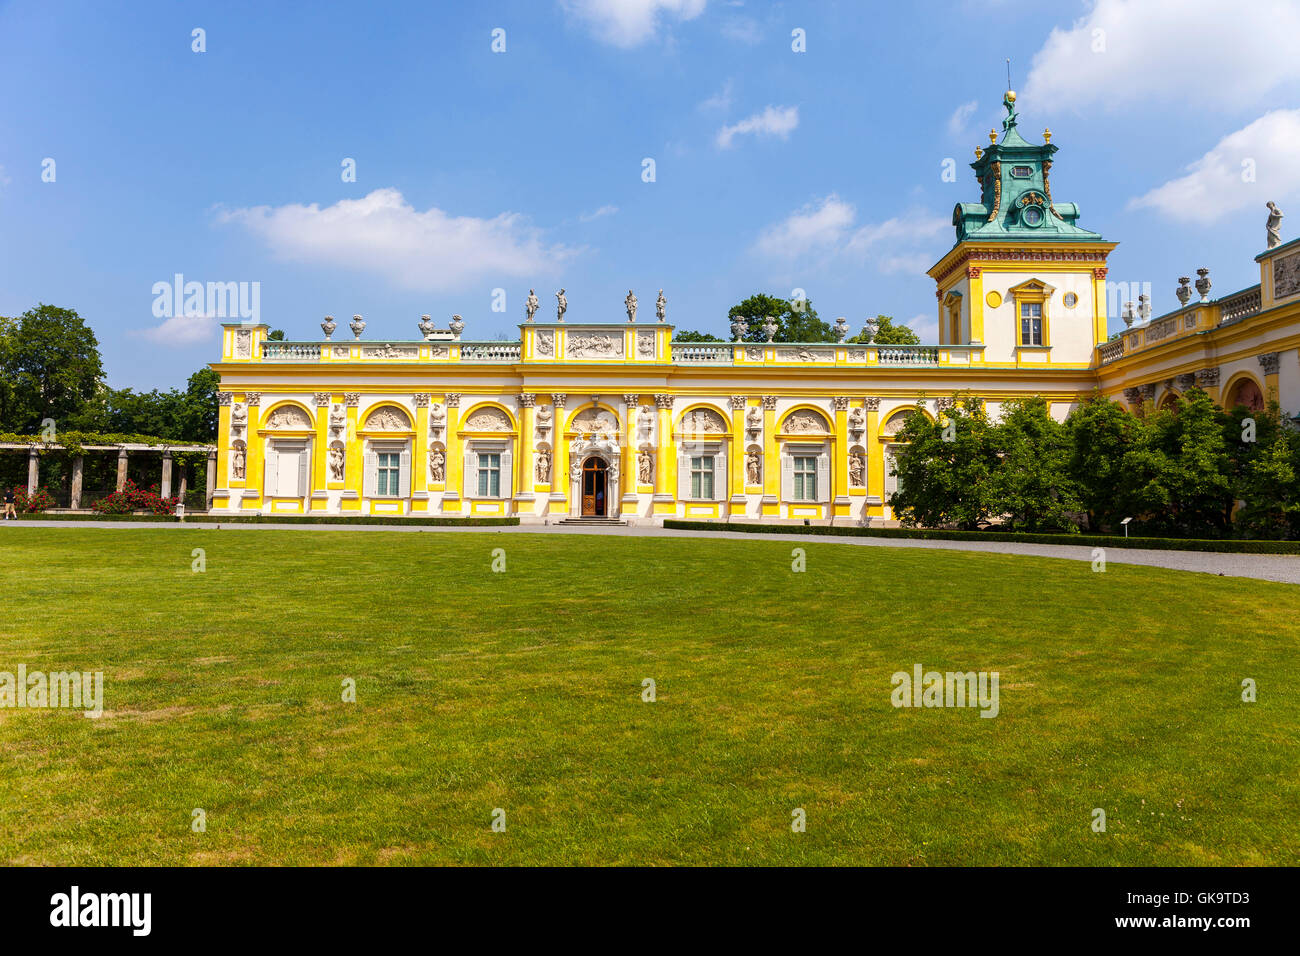 23 century Wilanow Palace in Warsaw, Poland formal garden - Stock Image